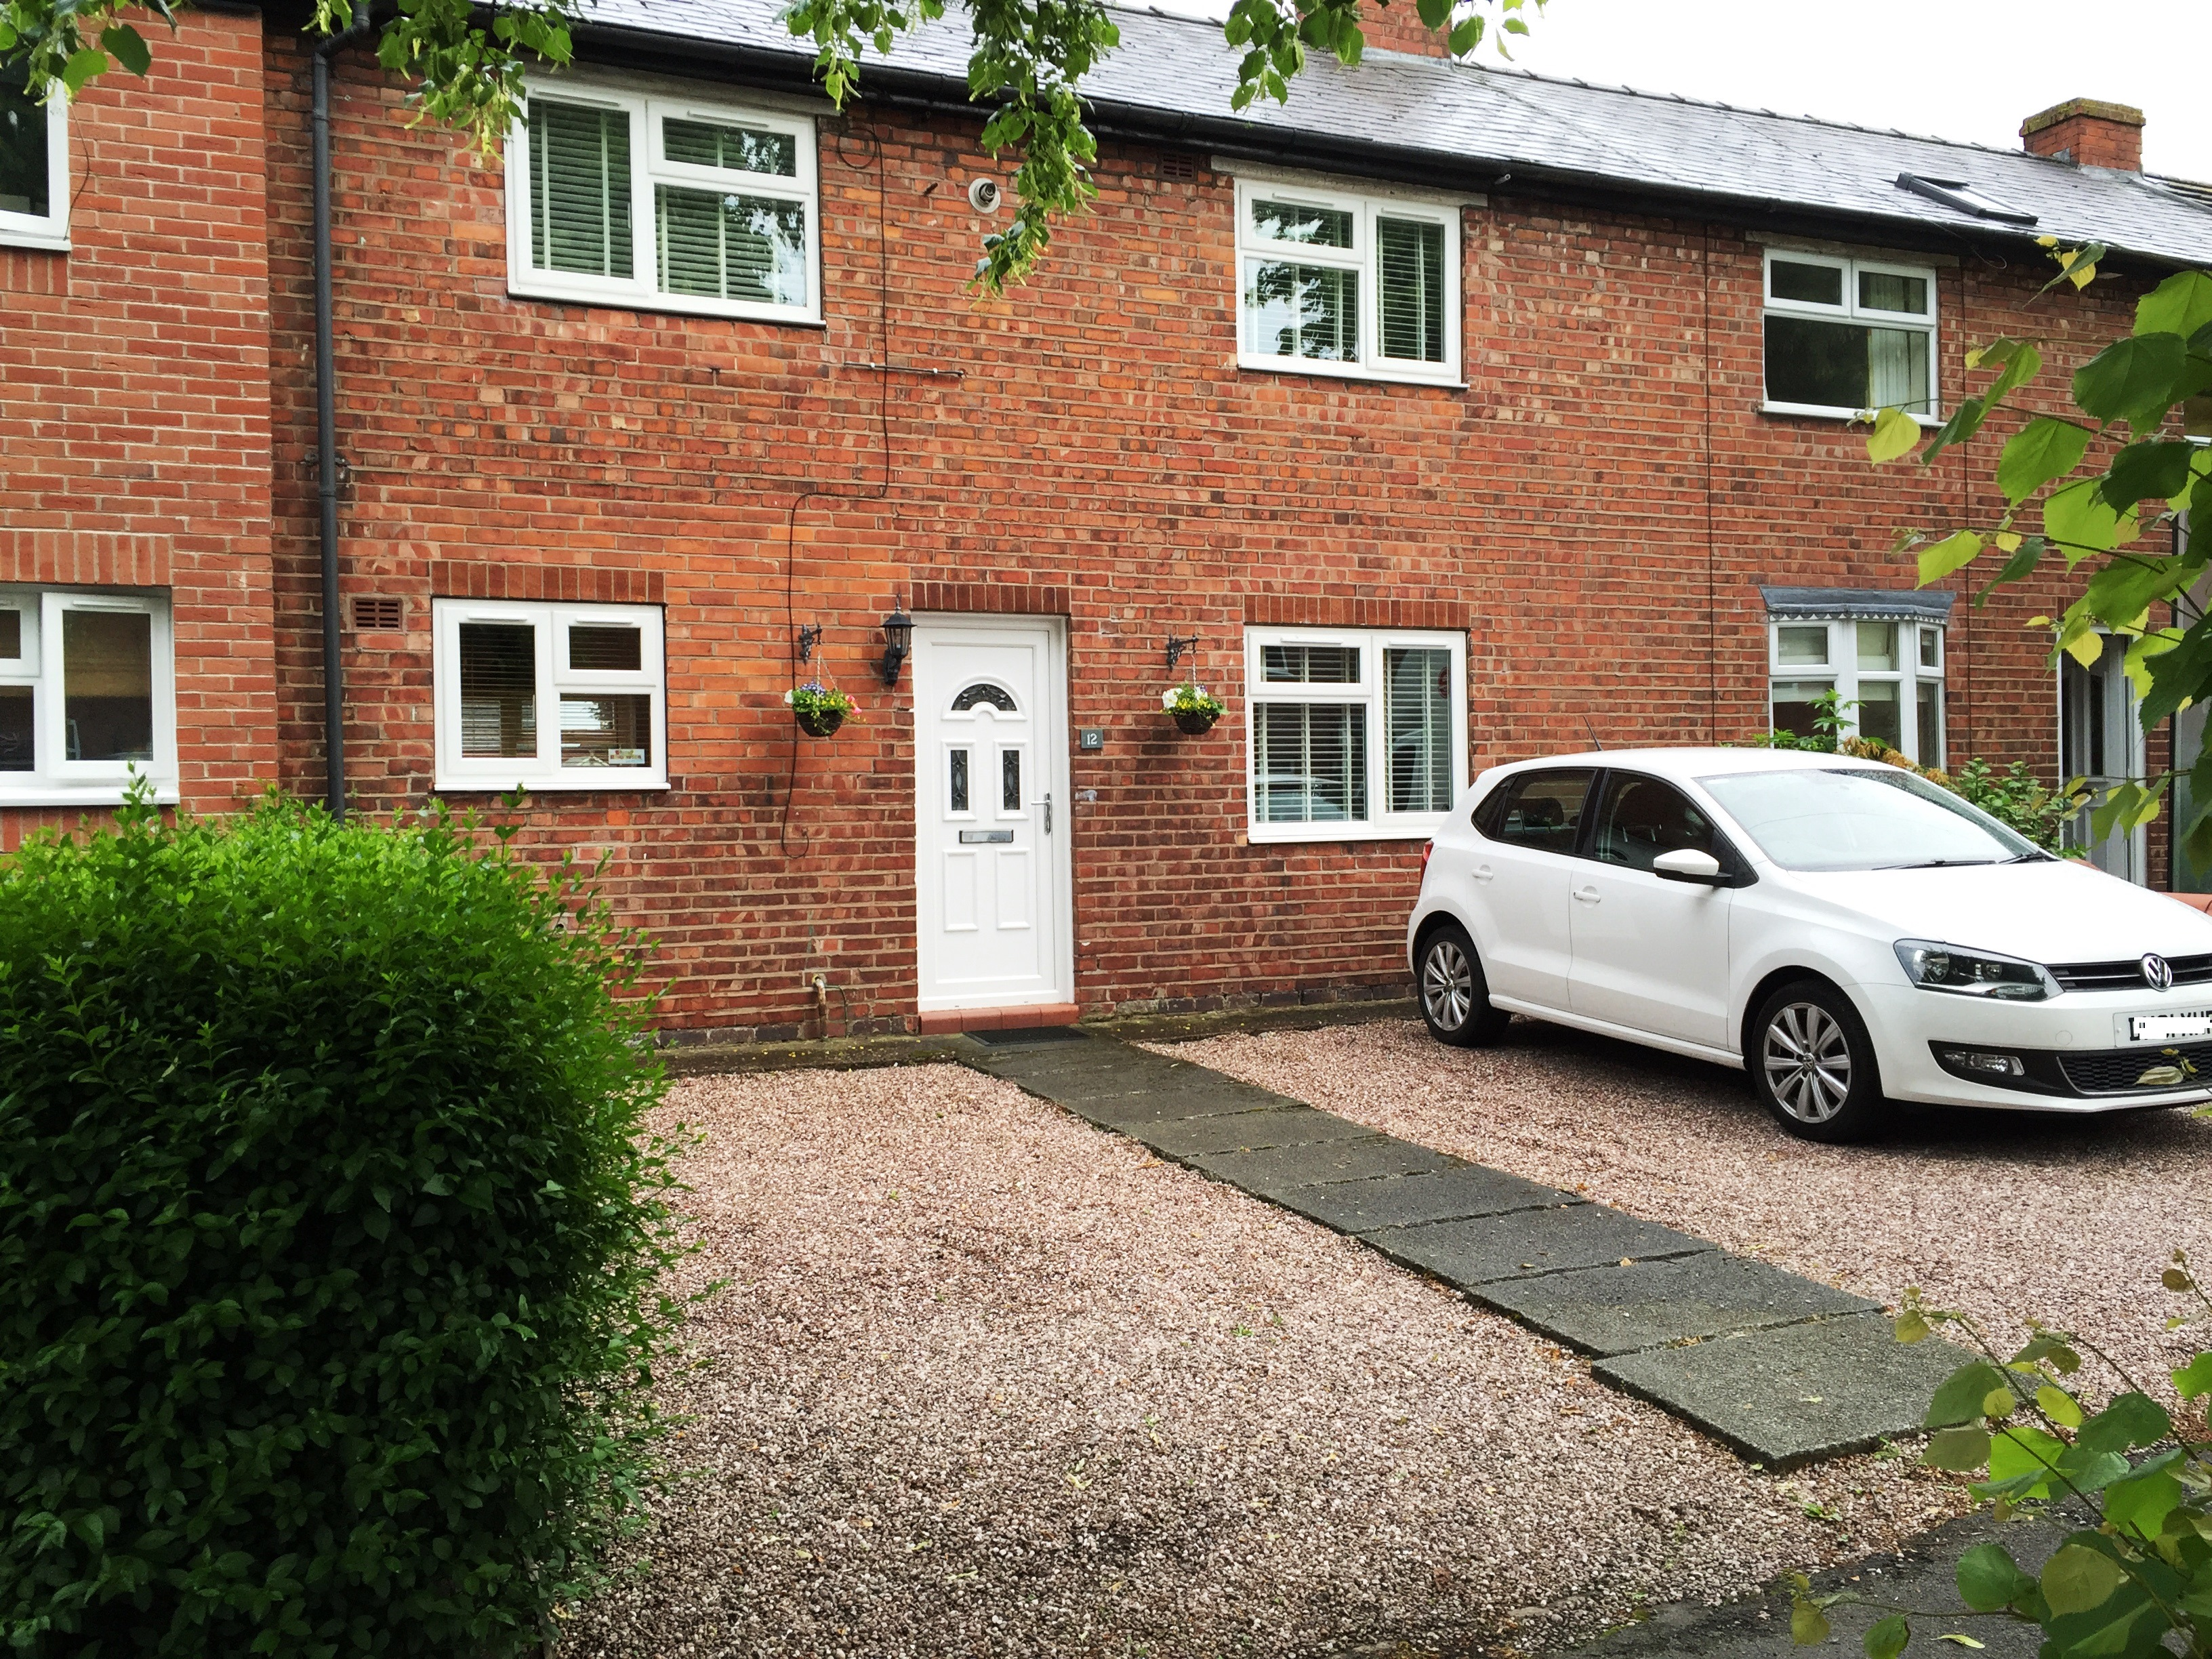 2 Bed House- Kitfield Avenue, Middlewich